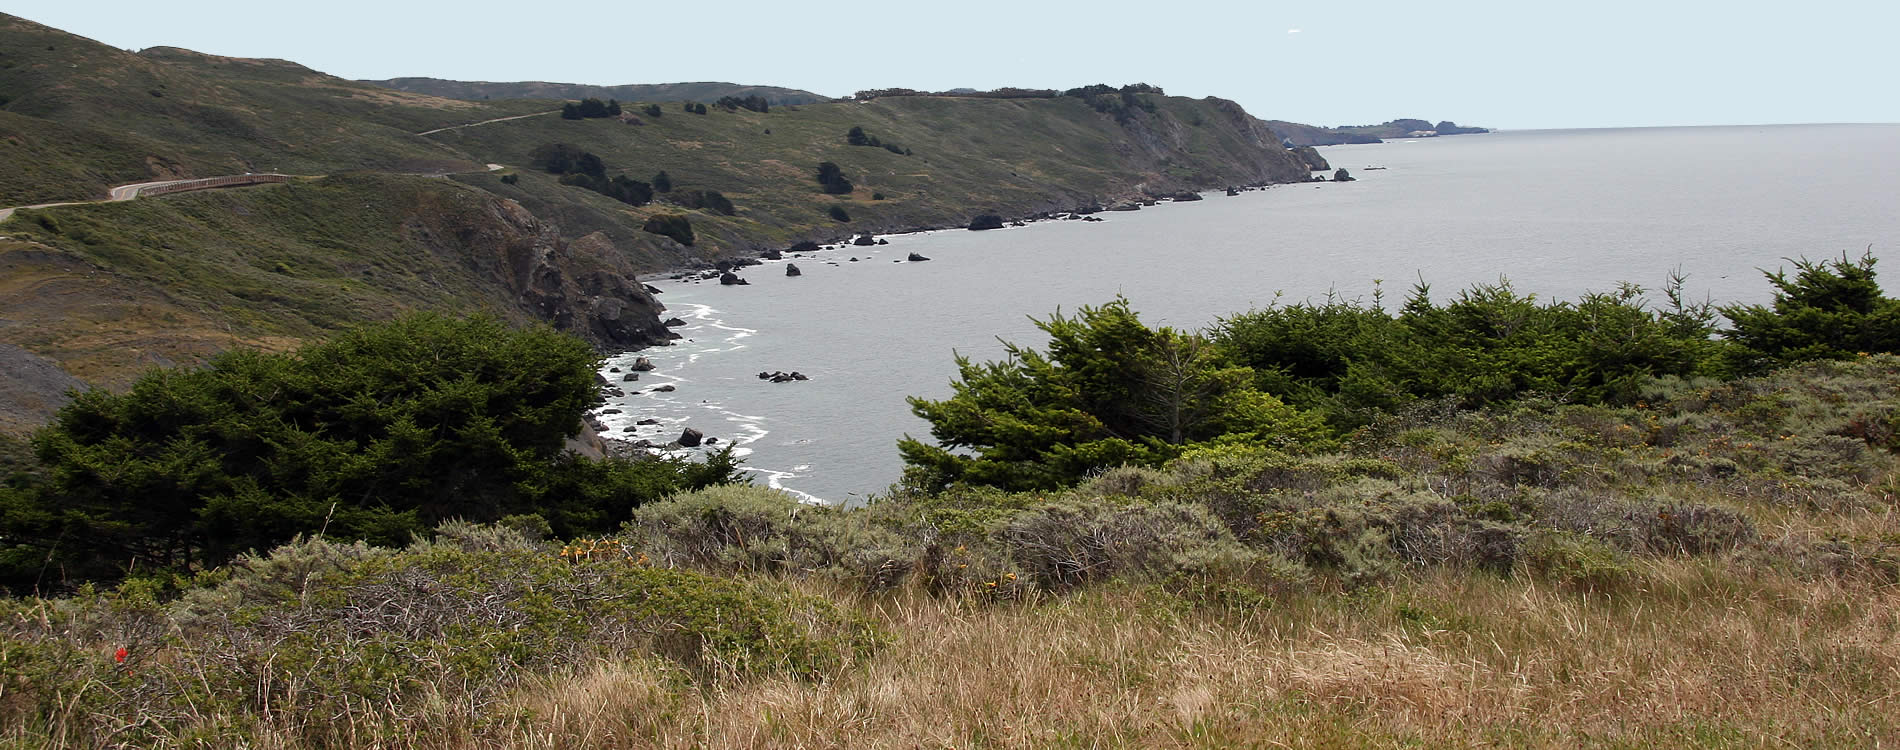 point reyes national seashore - muir beach & muir woods